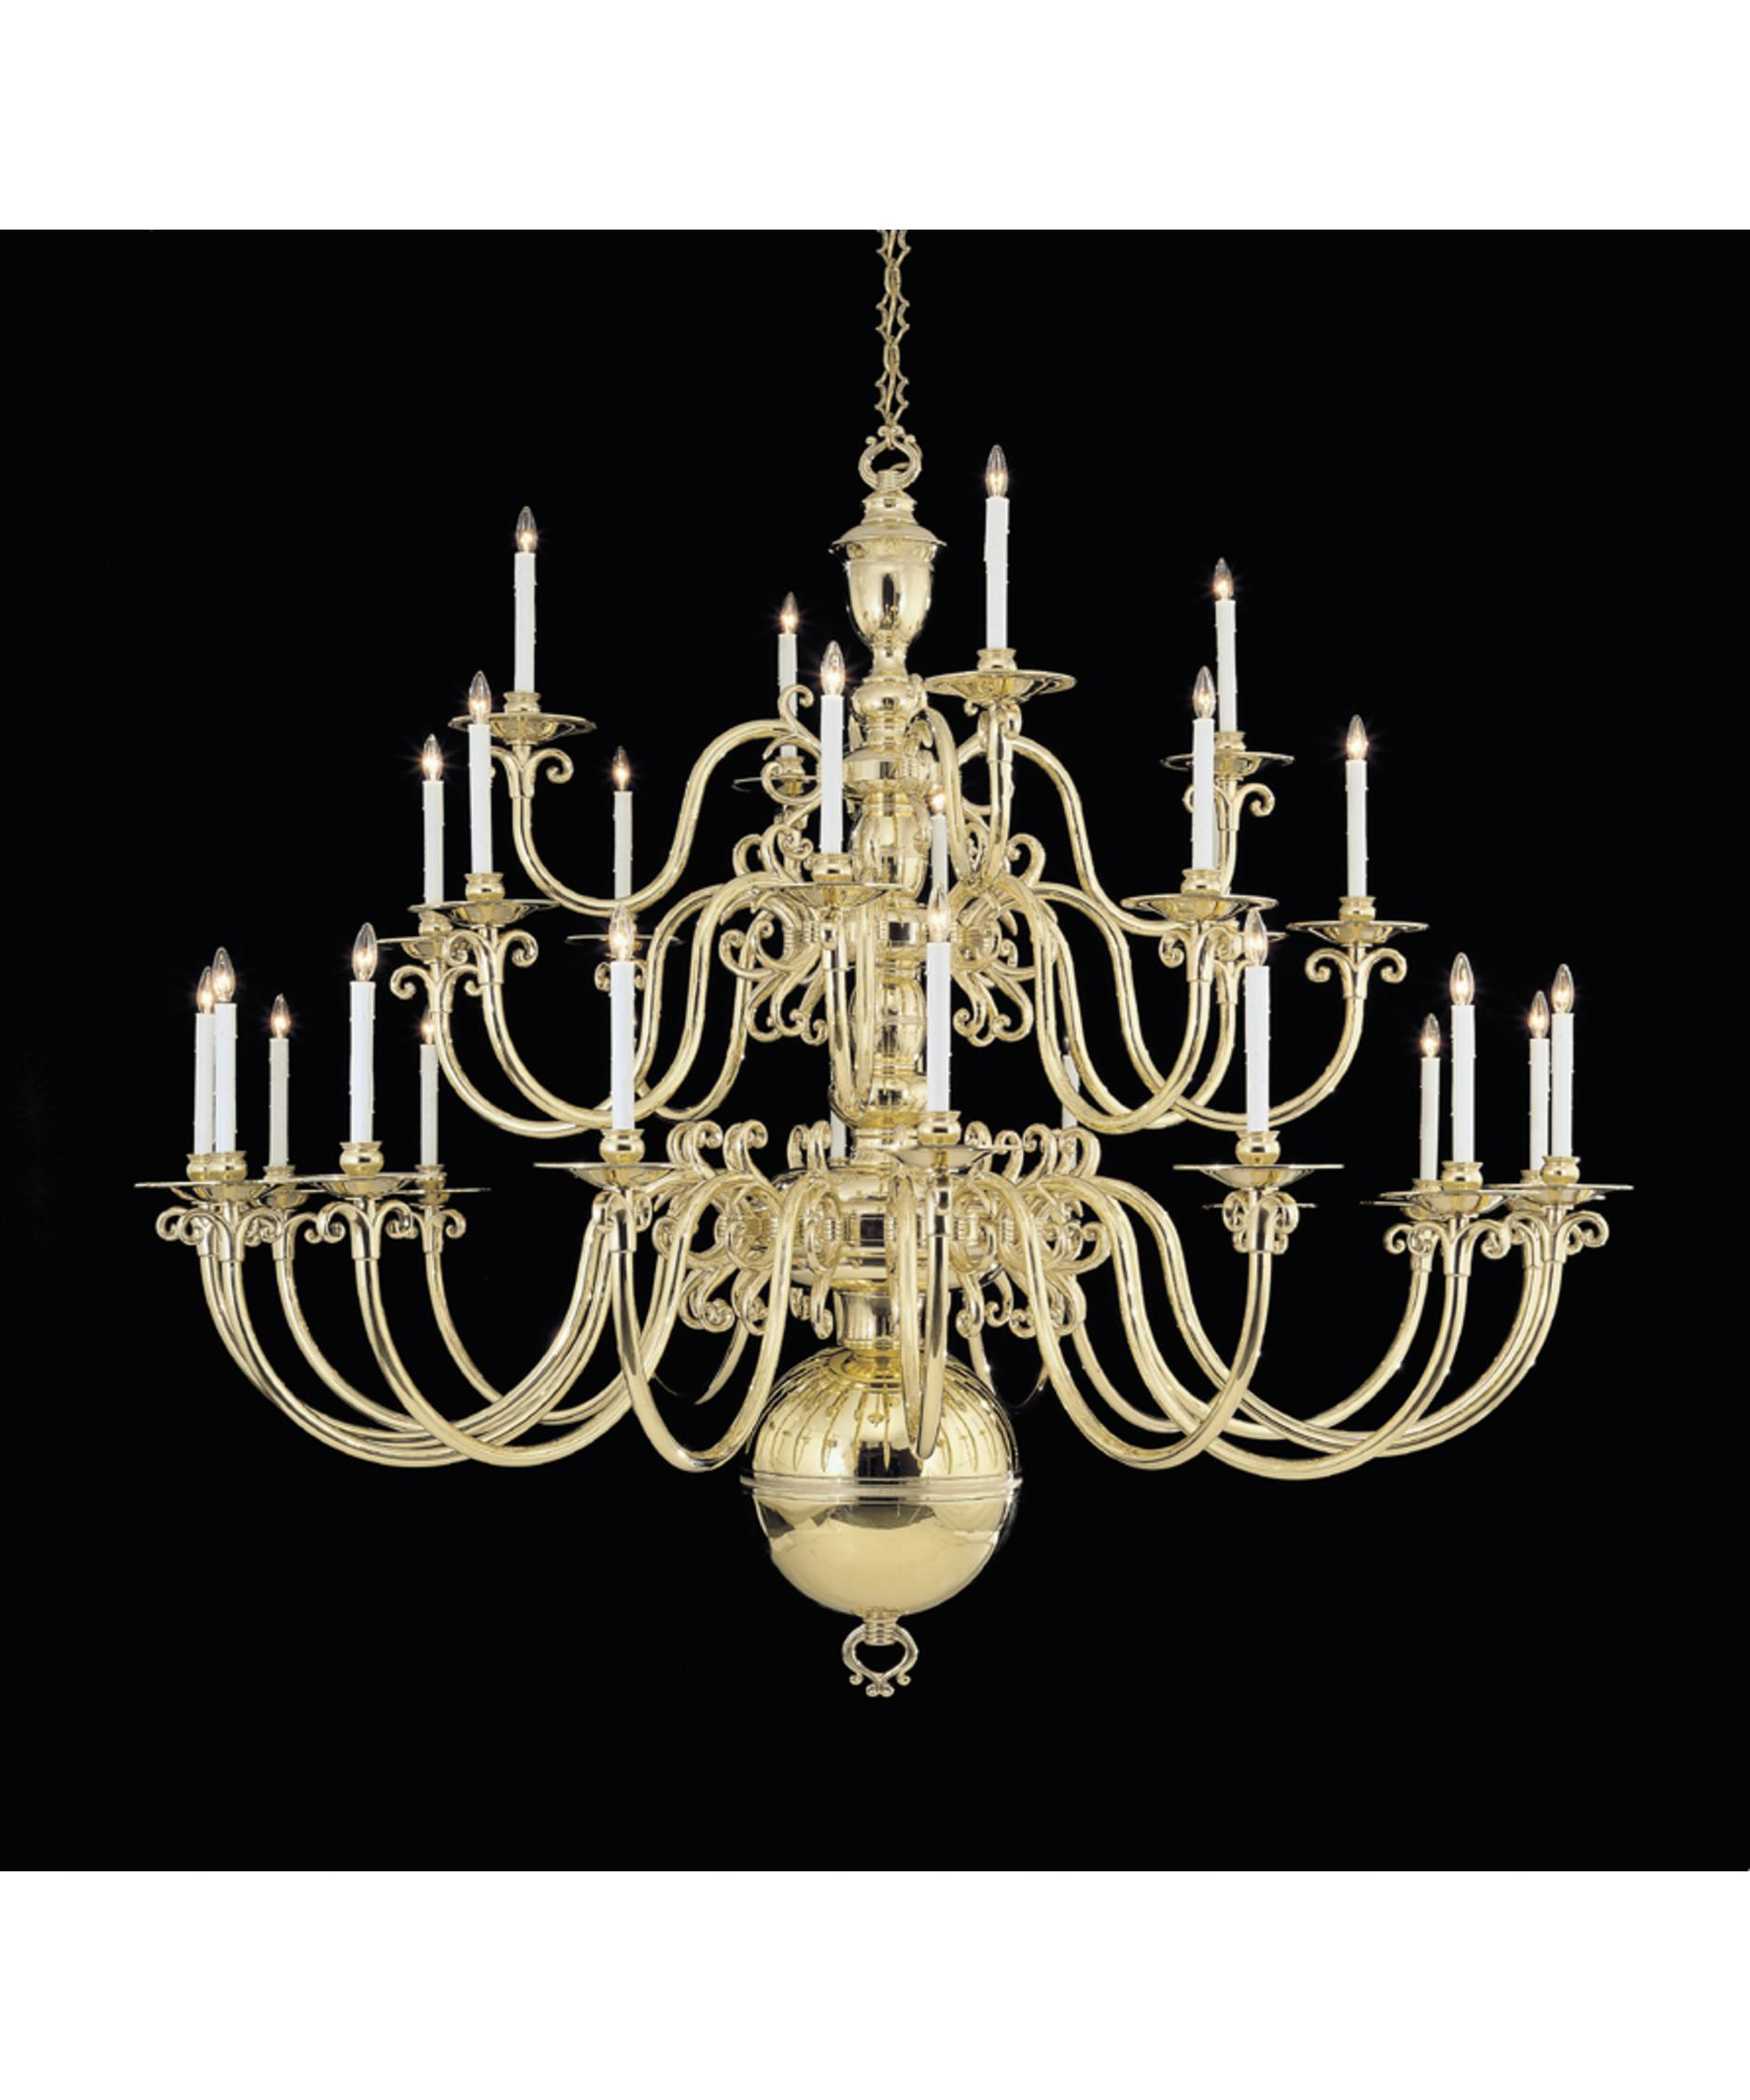 nulco lighting nulco lighting  delft  inch wide  light  - nulco chandelier